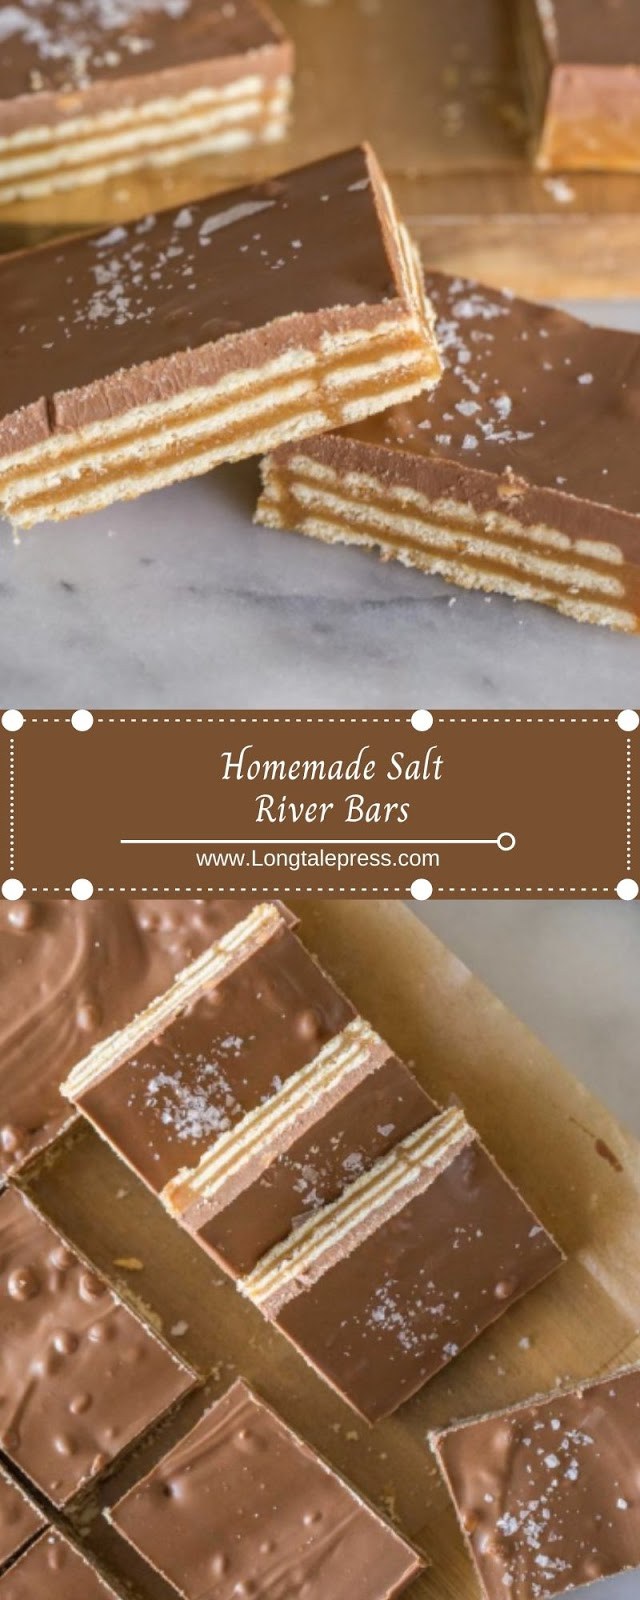 Homemade Salt River Bars